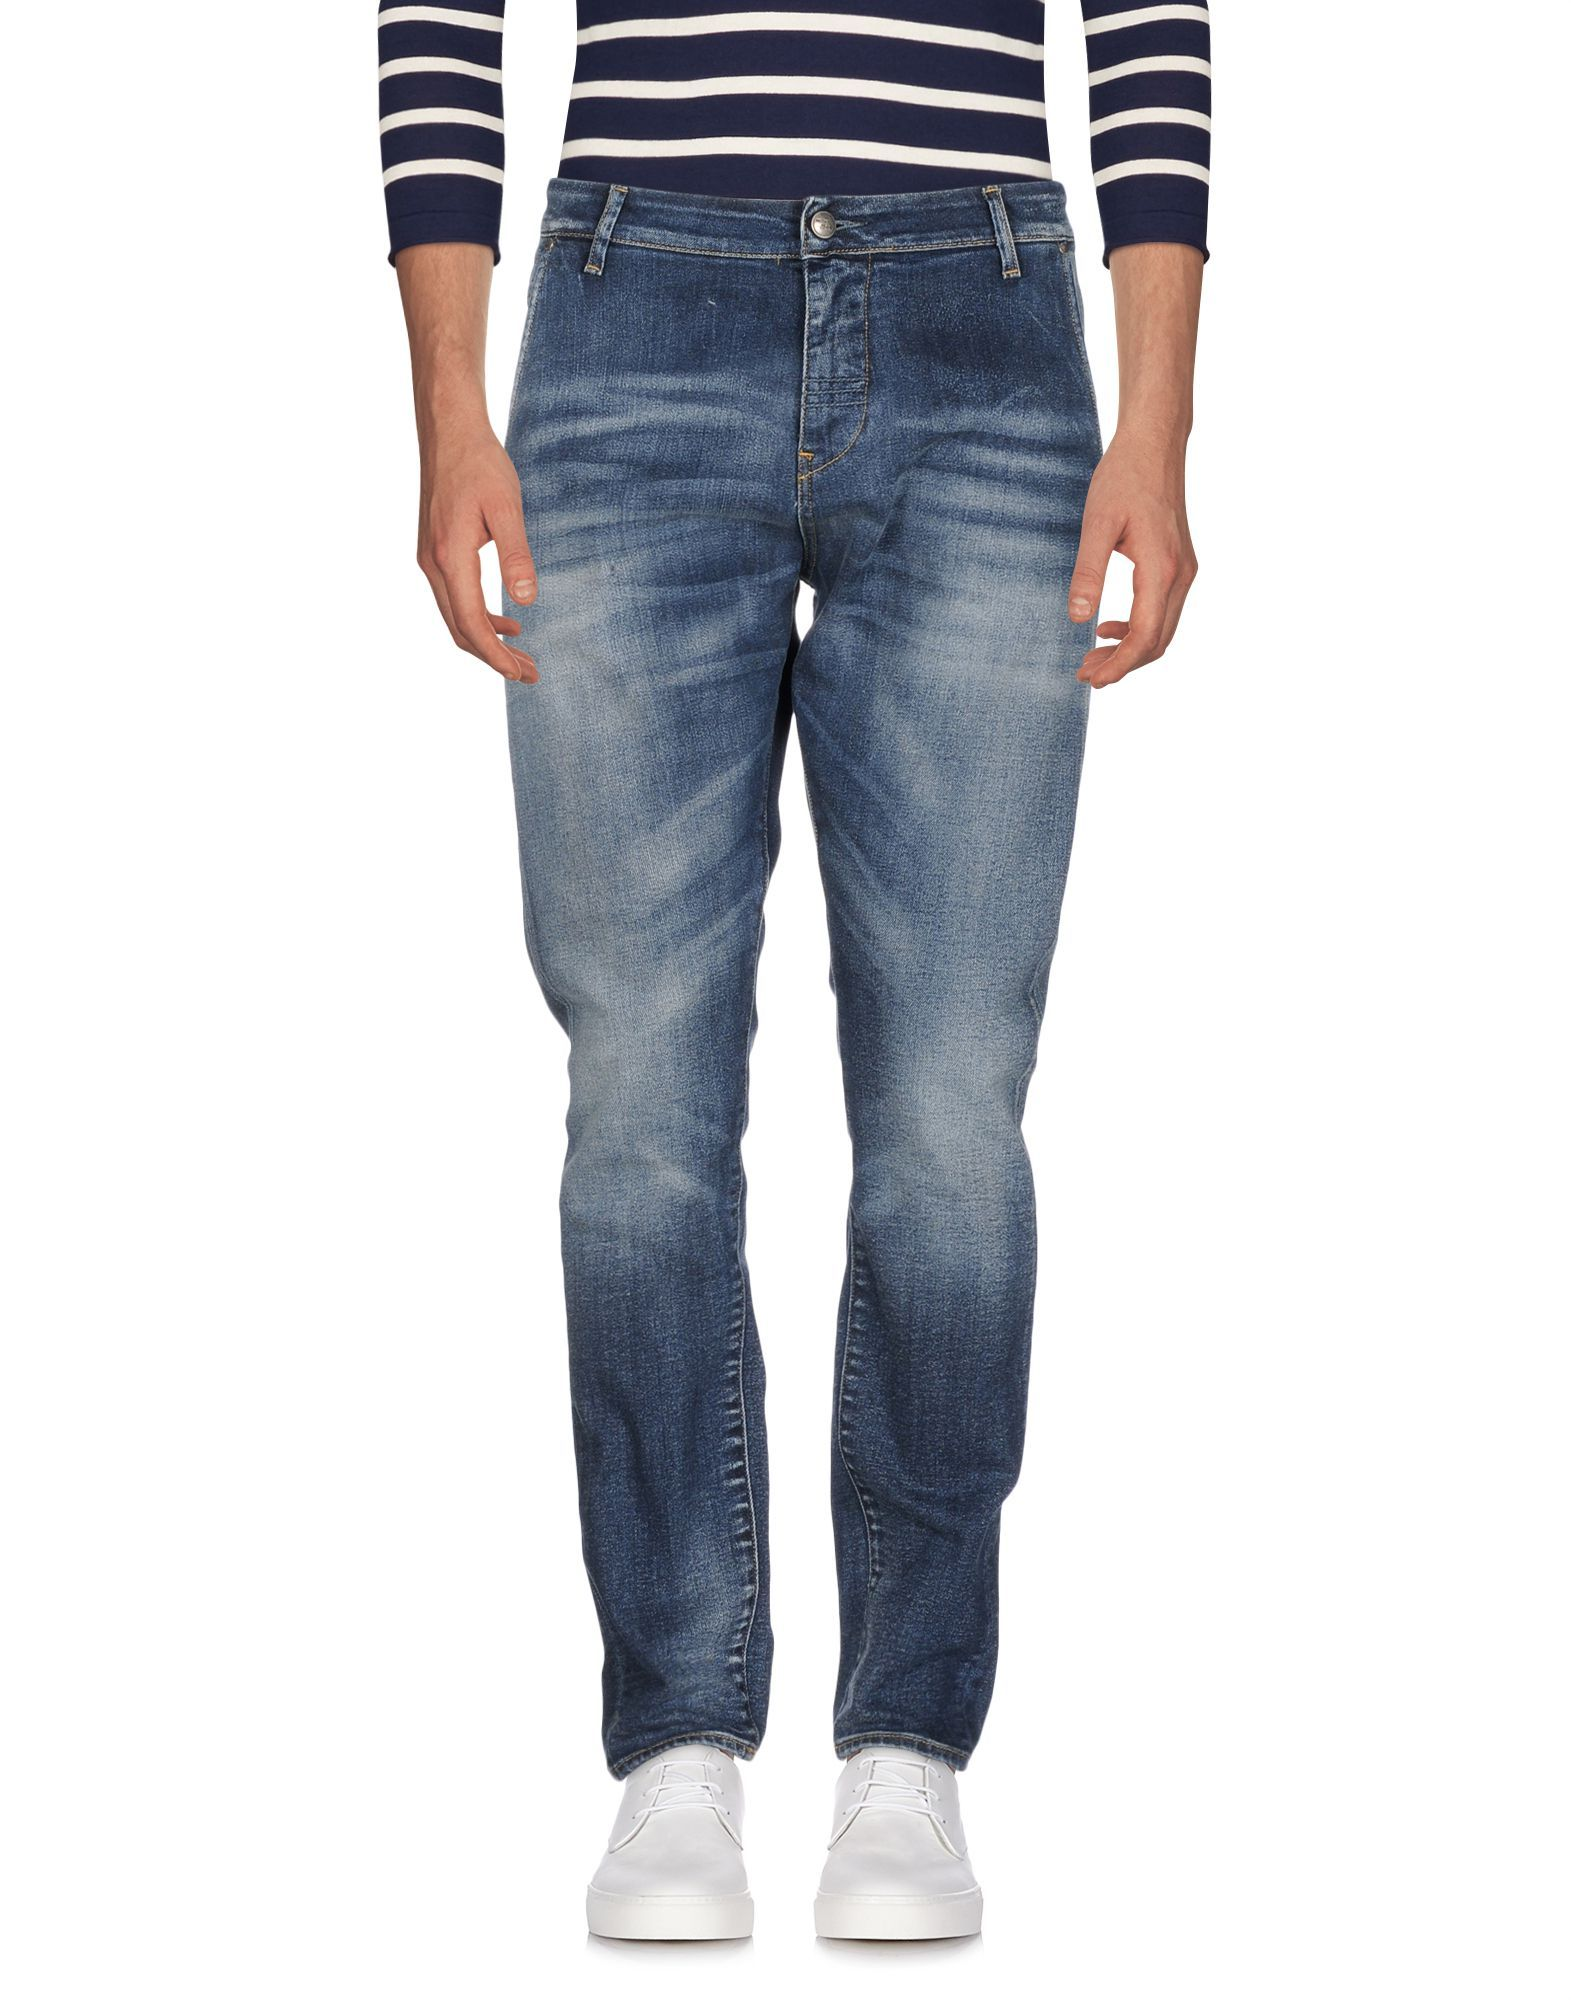 Meltin Pot Blue Cotton Jeans